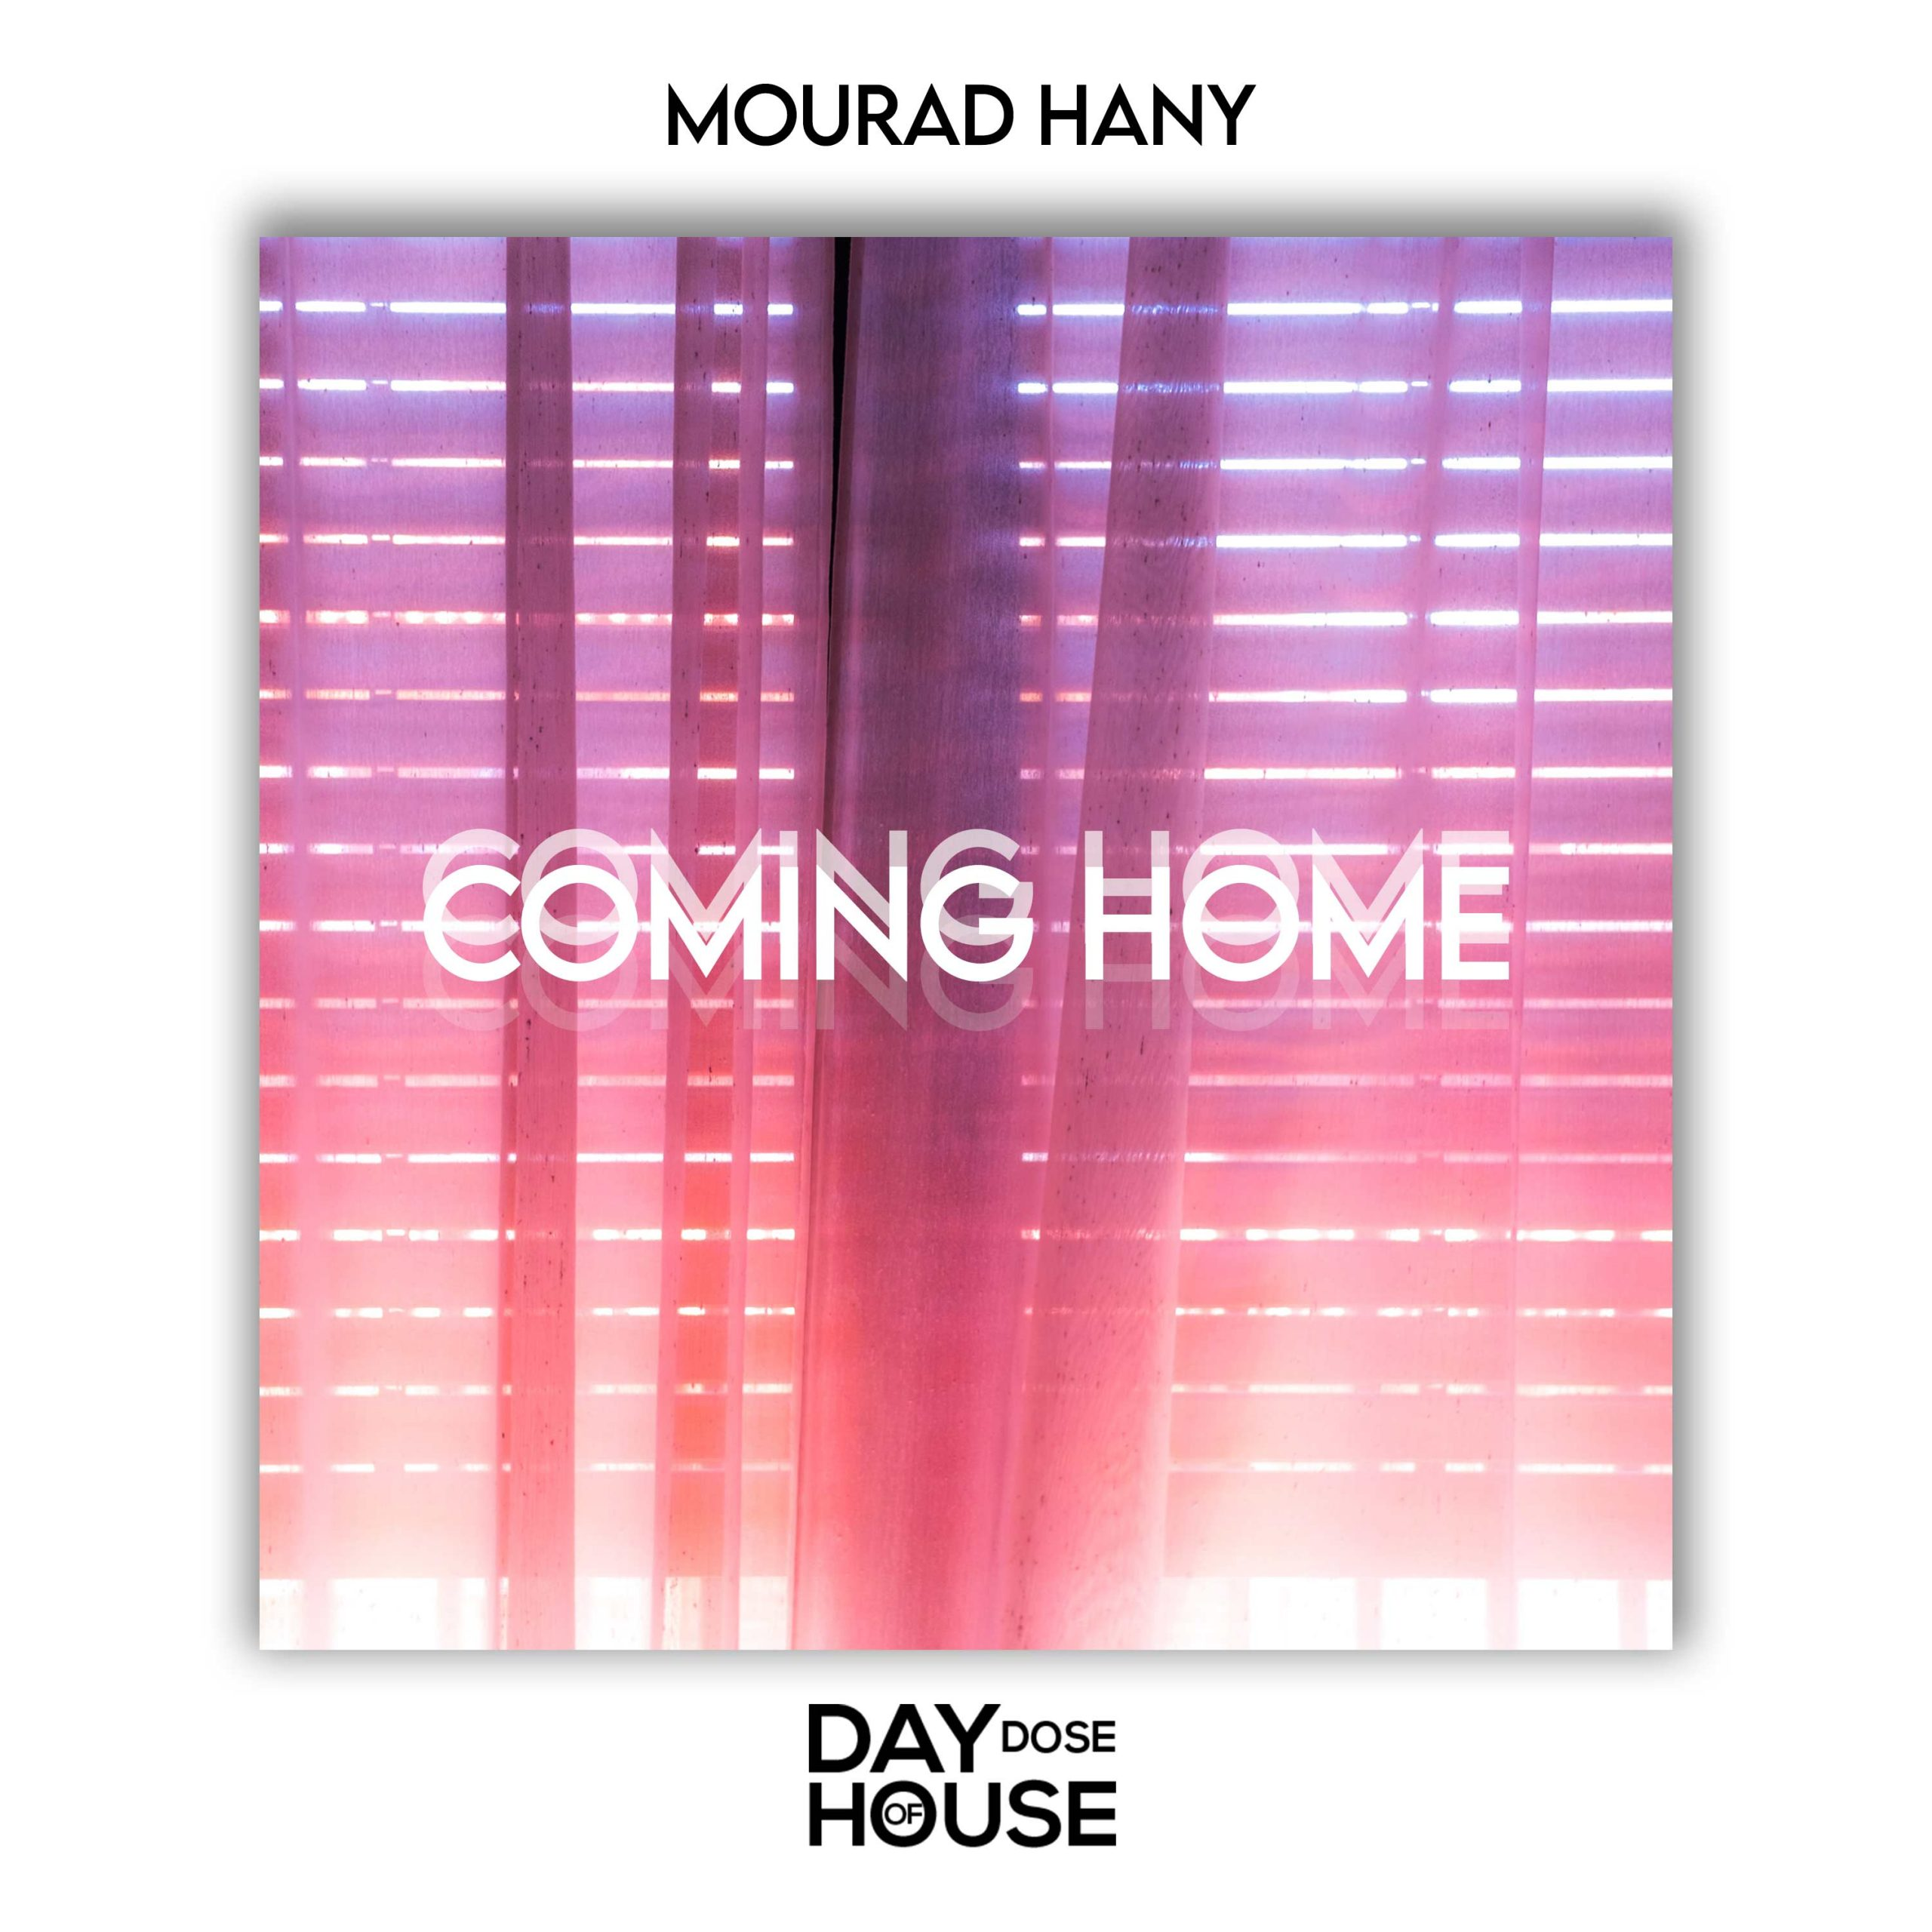 Mourad Hany - Coming Home